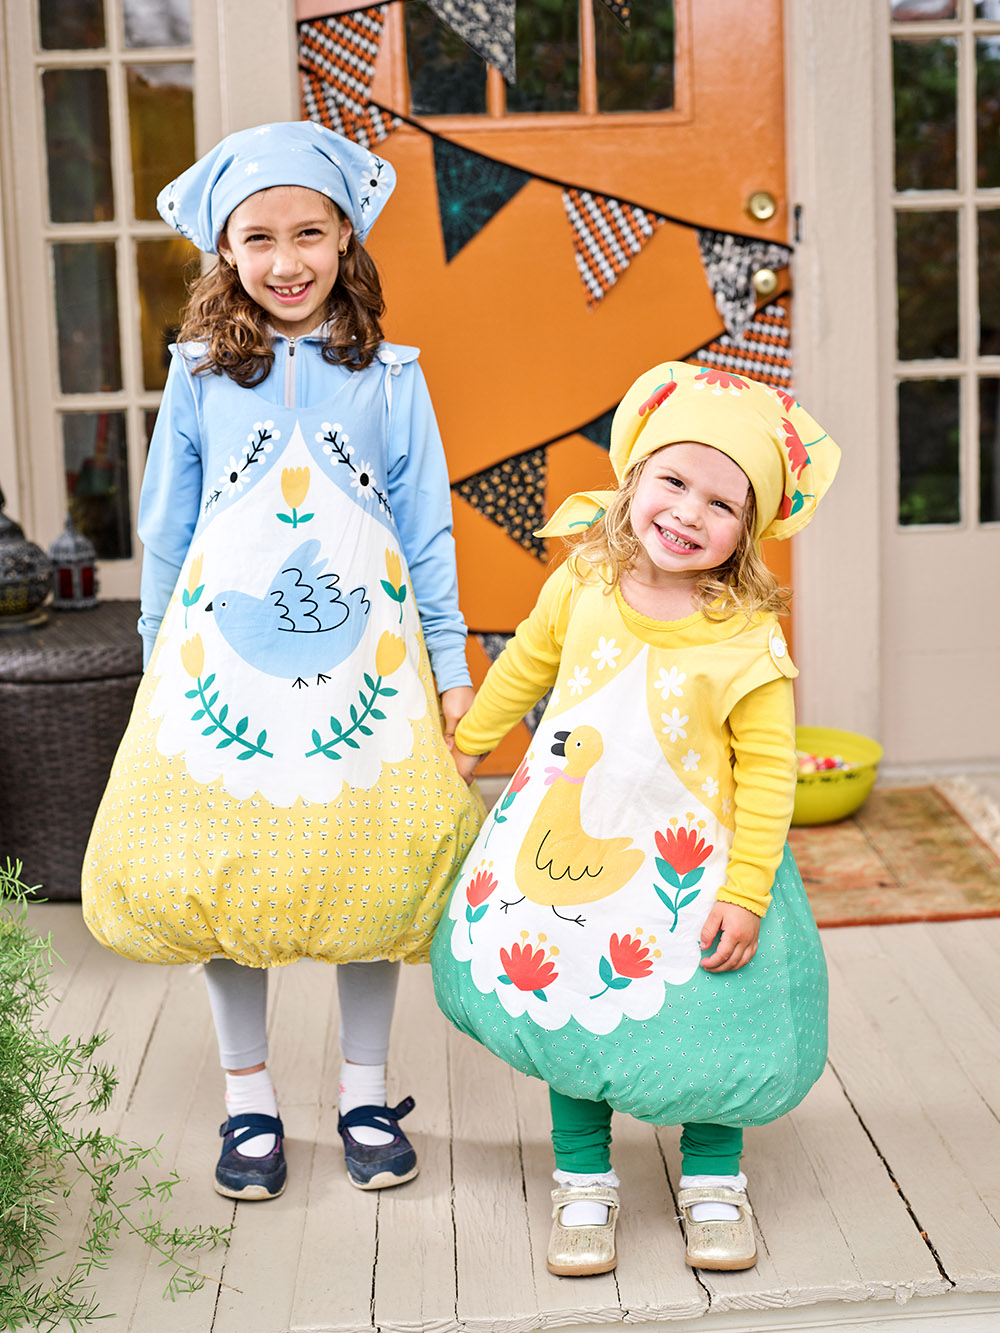 Handmade Halloween: Cut-and-Sew Matryoshka Doll Costumes | Spoonflower Blog